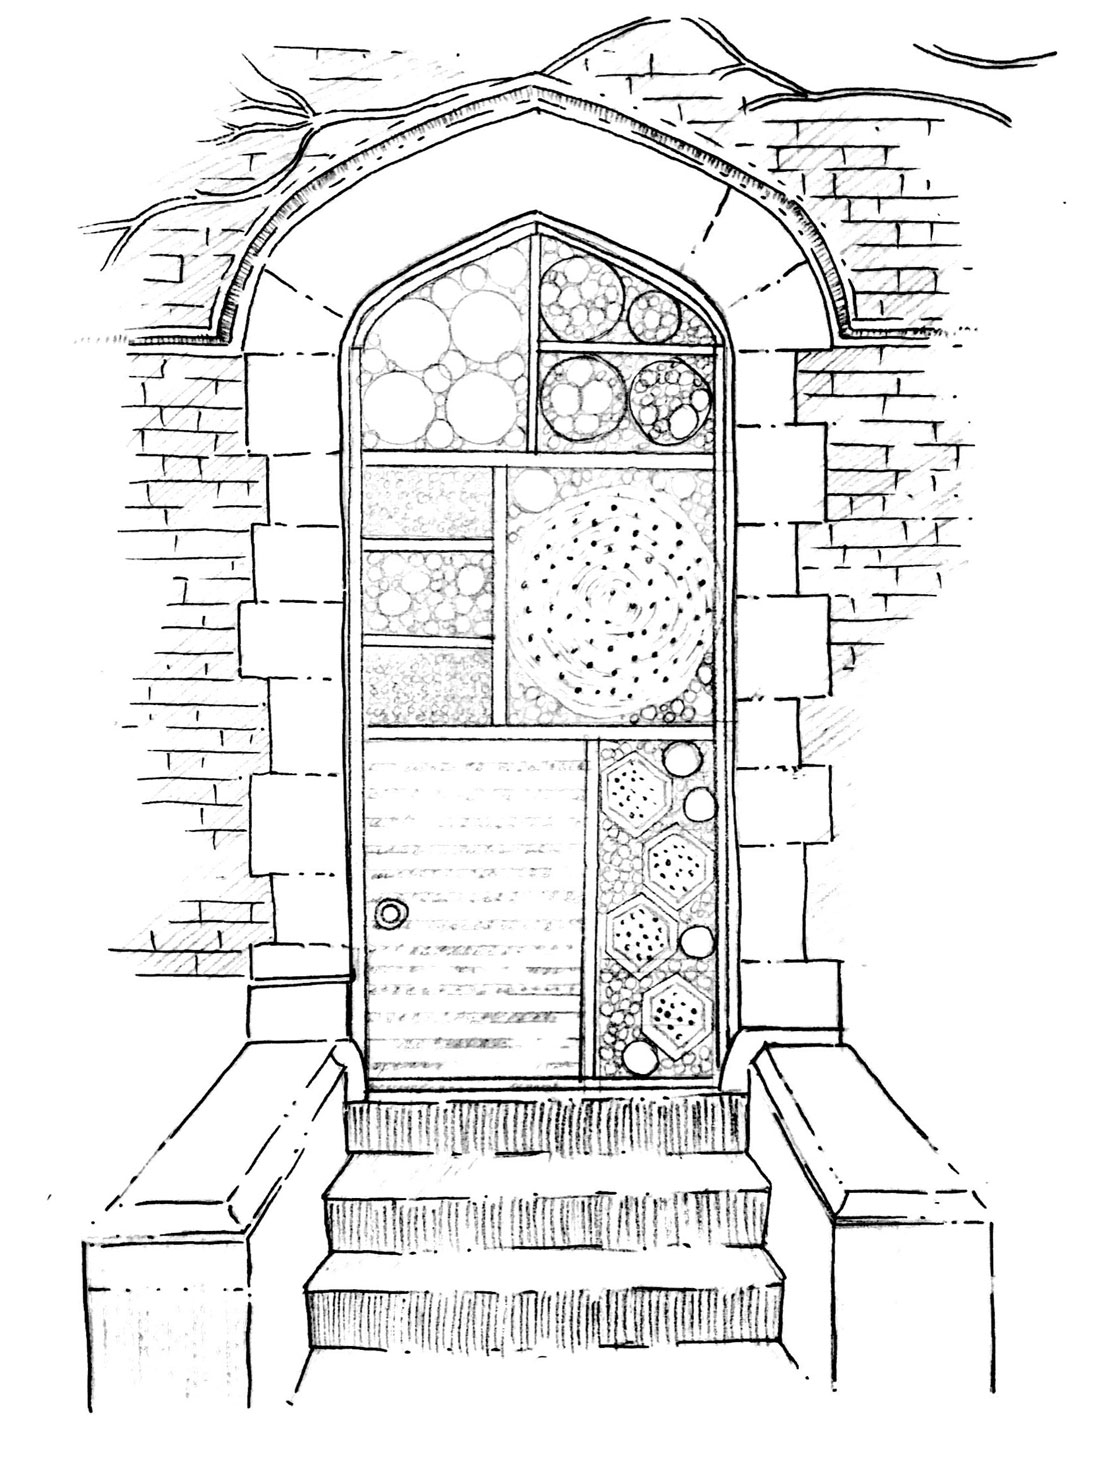 Hand drawn sketch of a brick doorway with stairs leading up to it. The doorway is drawn to be filled with ends of bamboo, sticks, bricks and wood in sections.